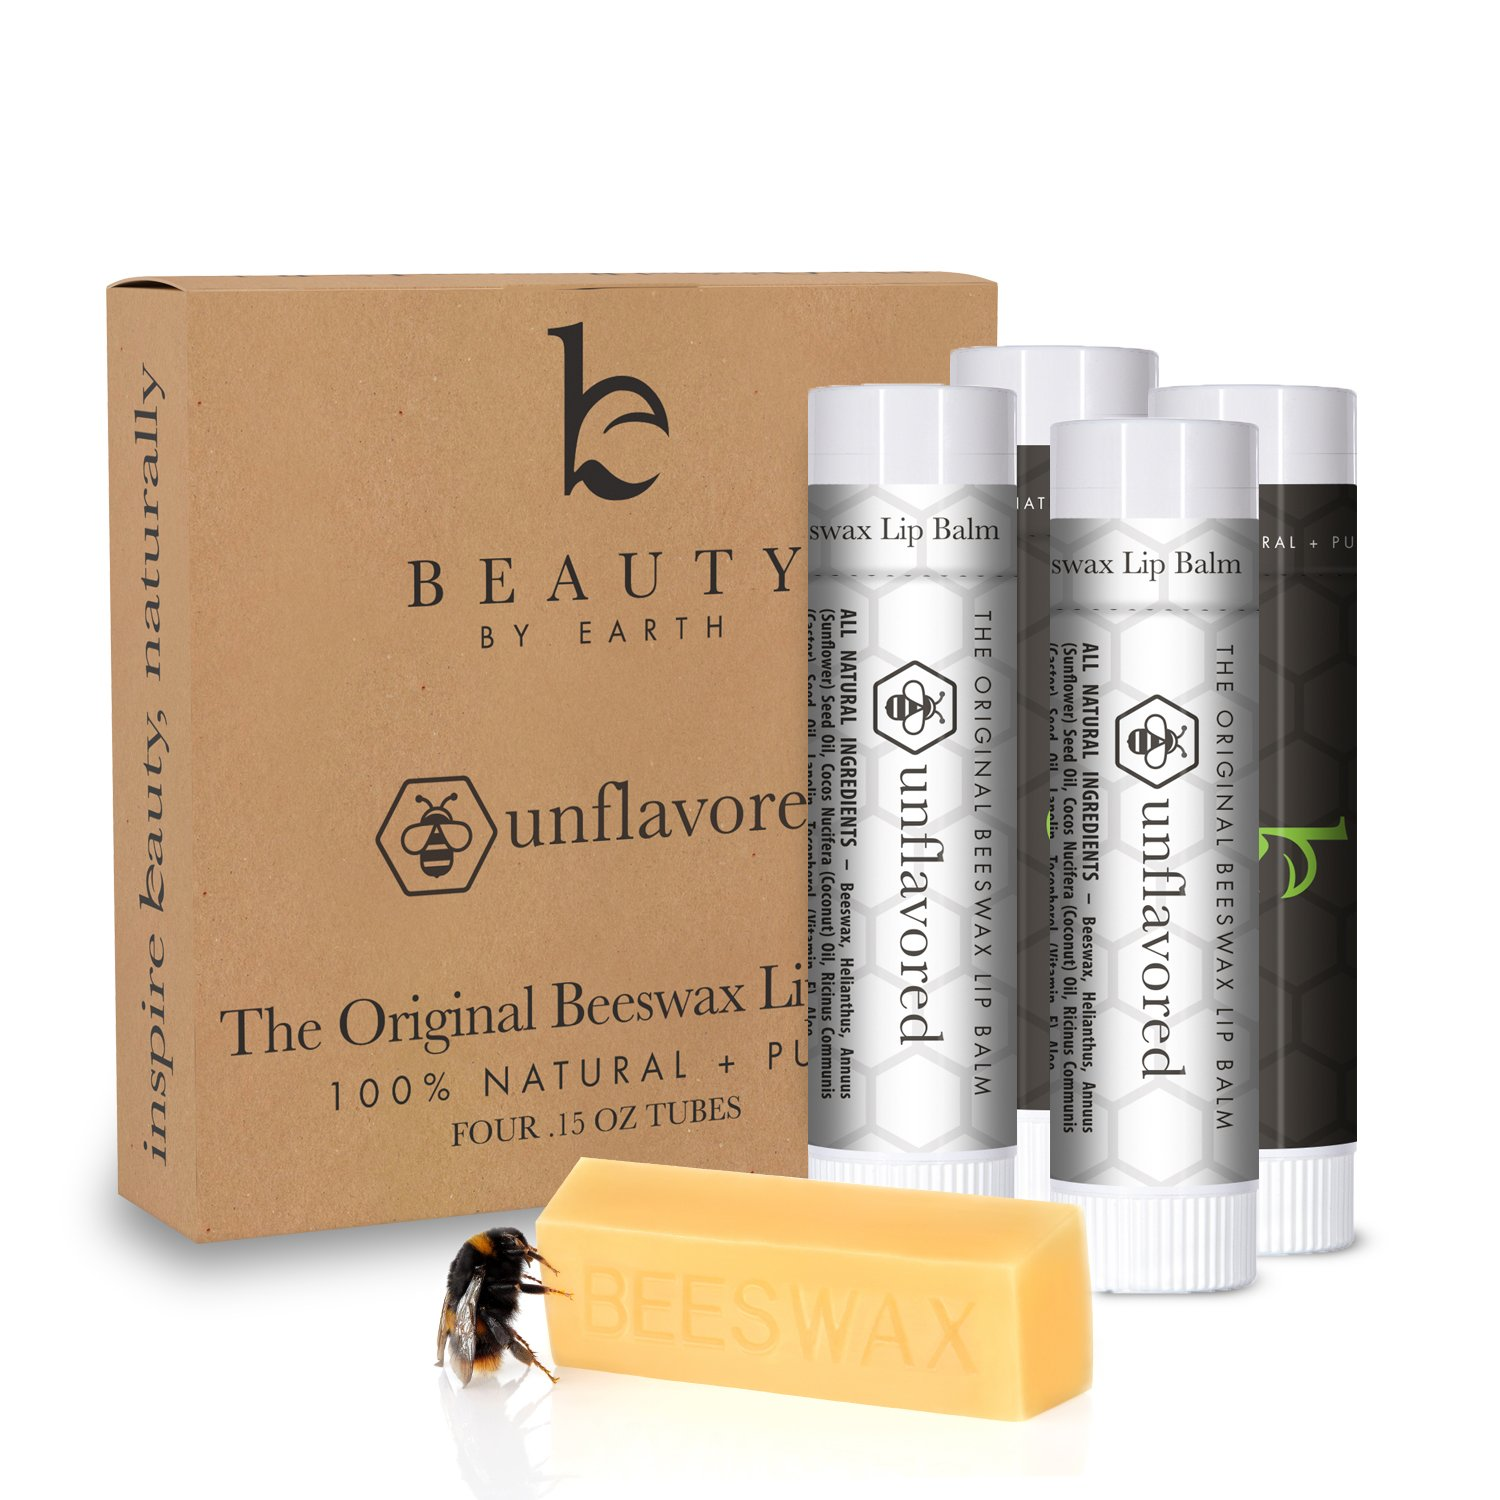 Organic Unflavored Lip Balm; With Pure and Natural Beeswax for Nourishing Repair and Hydrating Chapped, Cracked Lips; Long Lasting Chapstick for Smooth Moisturizing Therapy (4 Tubes in Pack) Beauty by Earth